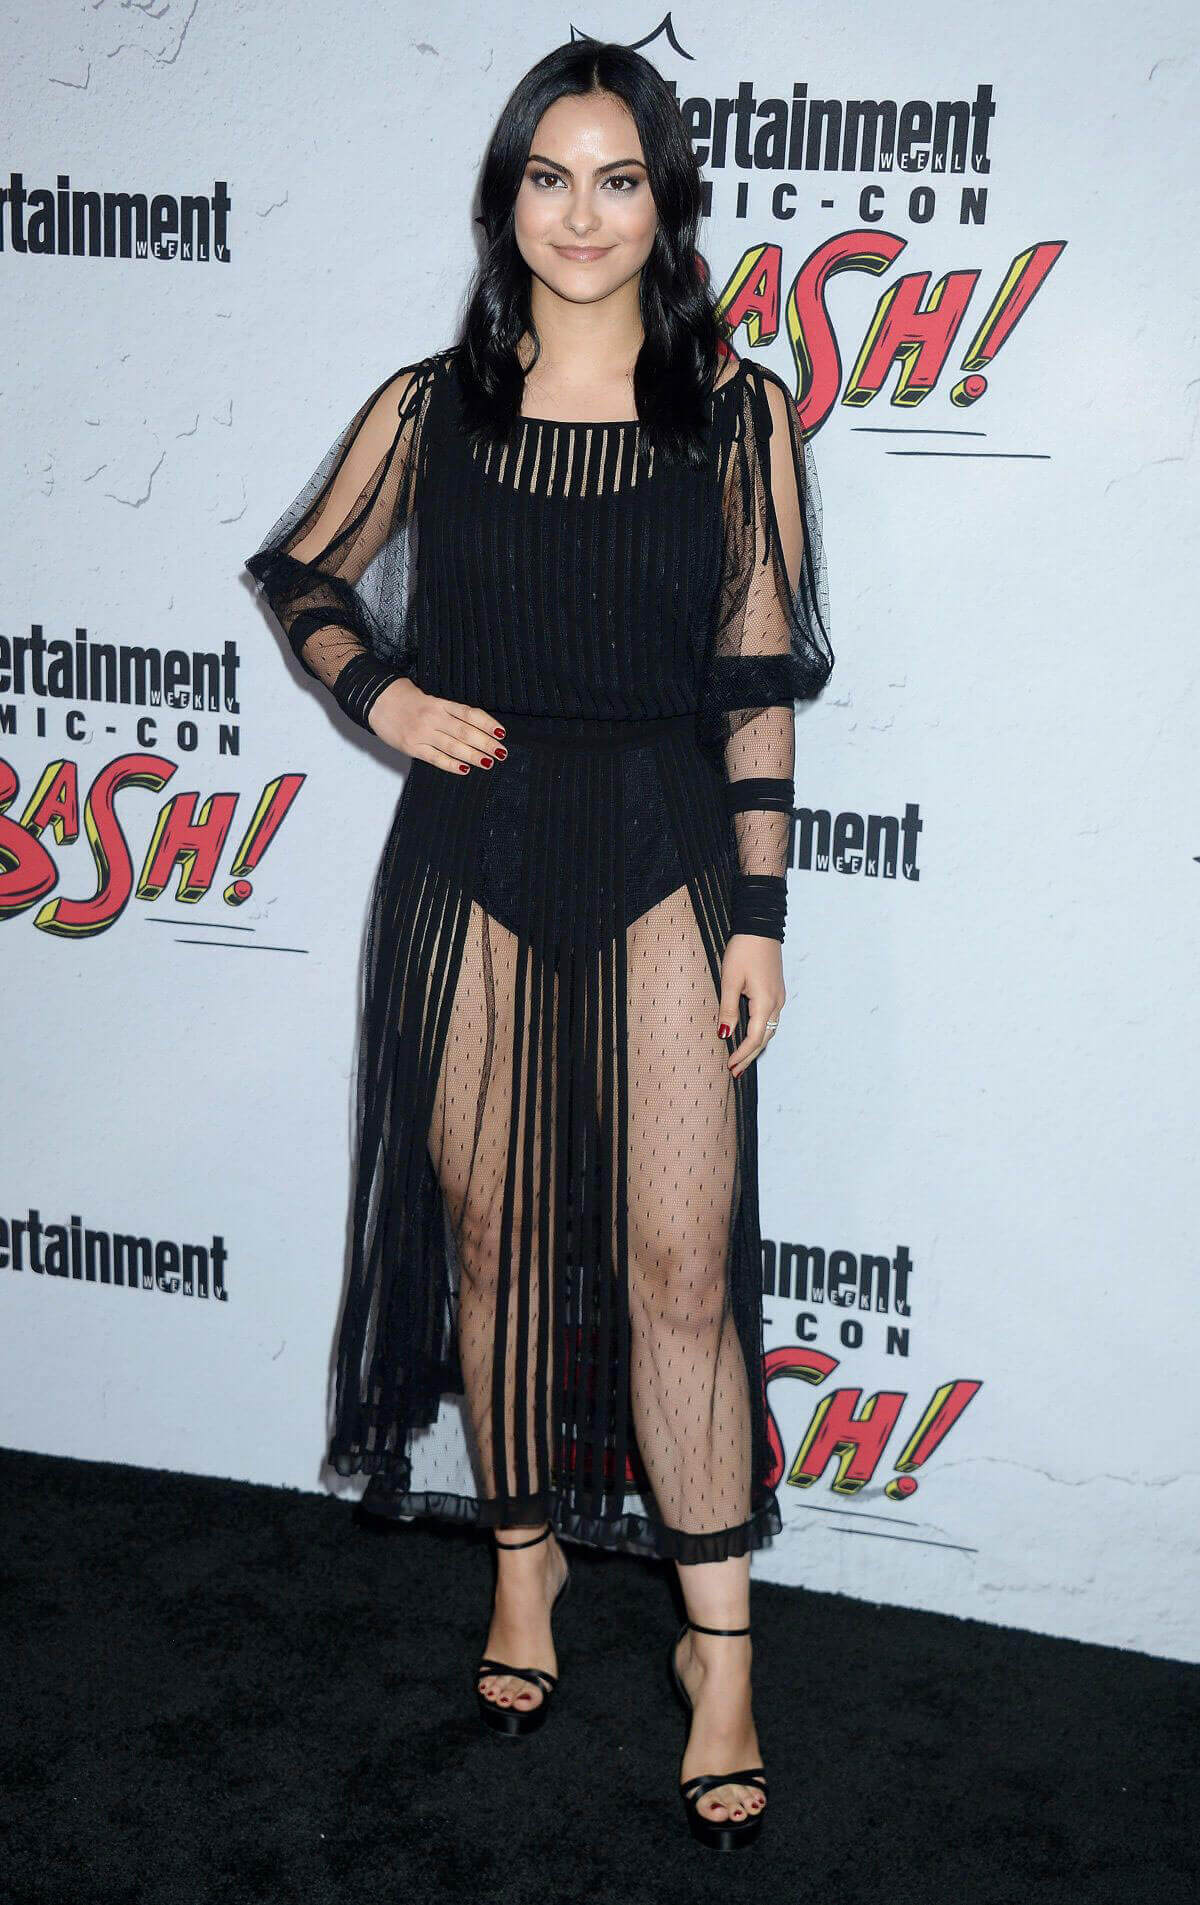 Camila Mendes Stills at Entertainment Weekly's Comic-con Party in San Diego